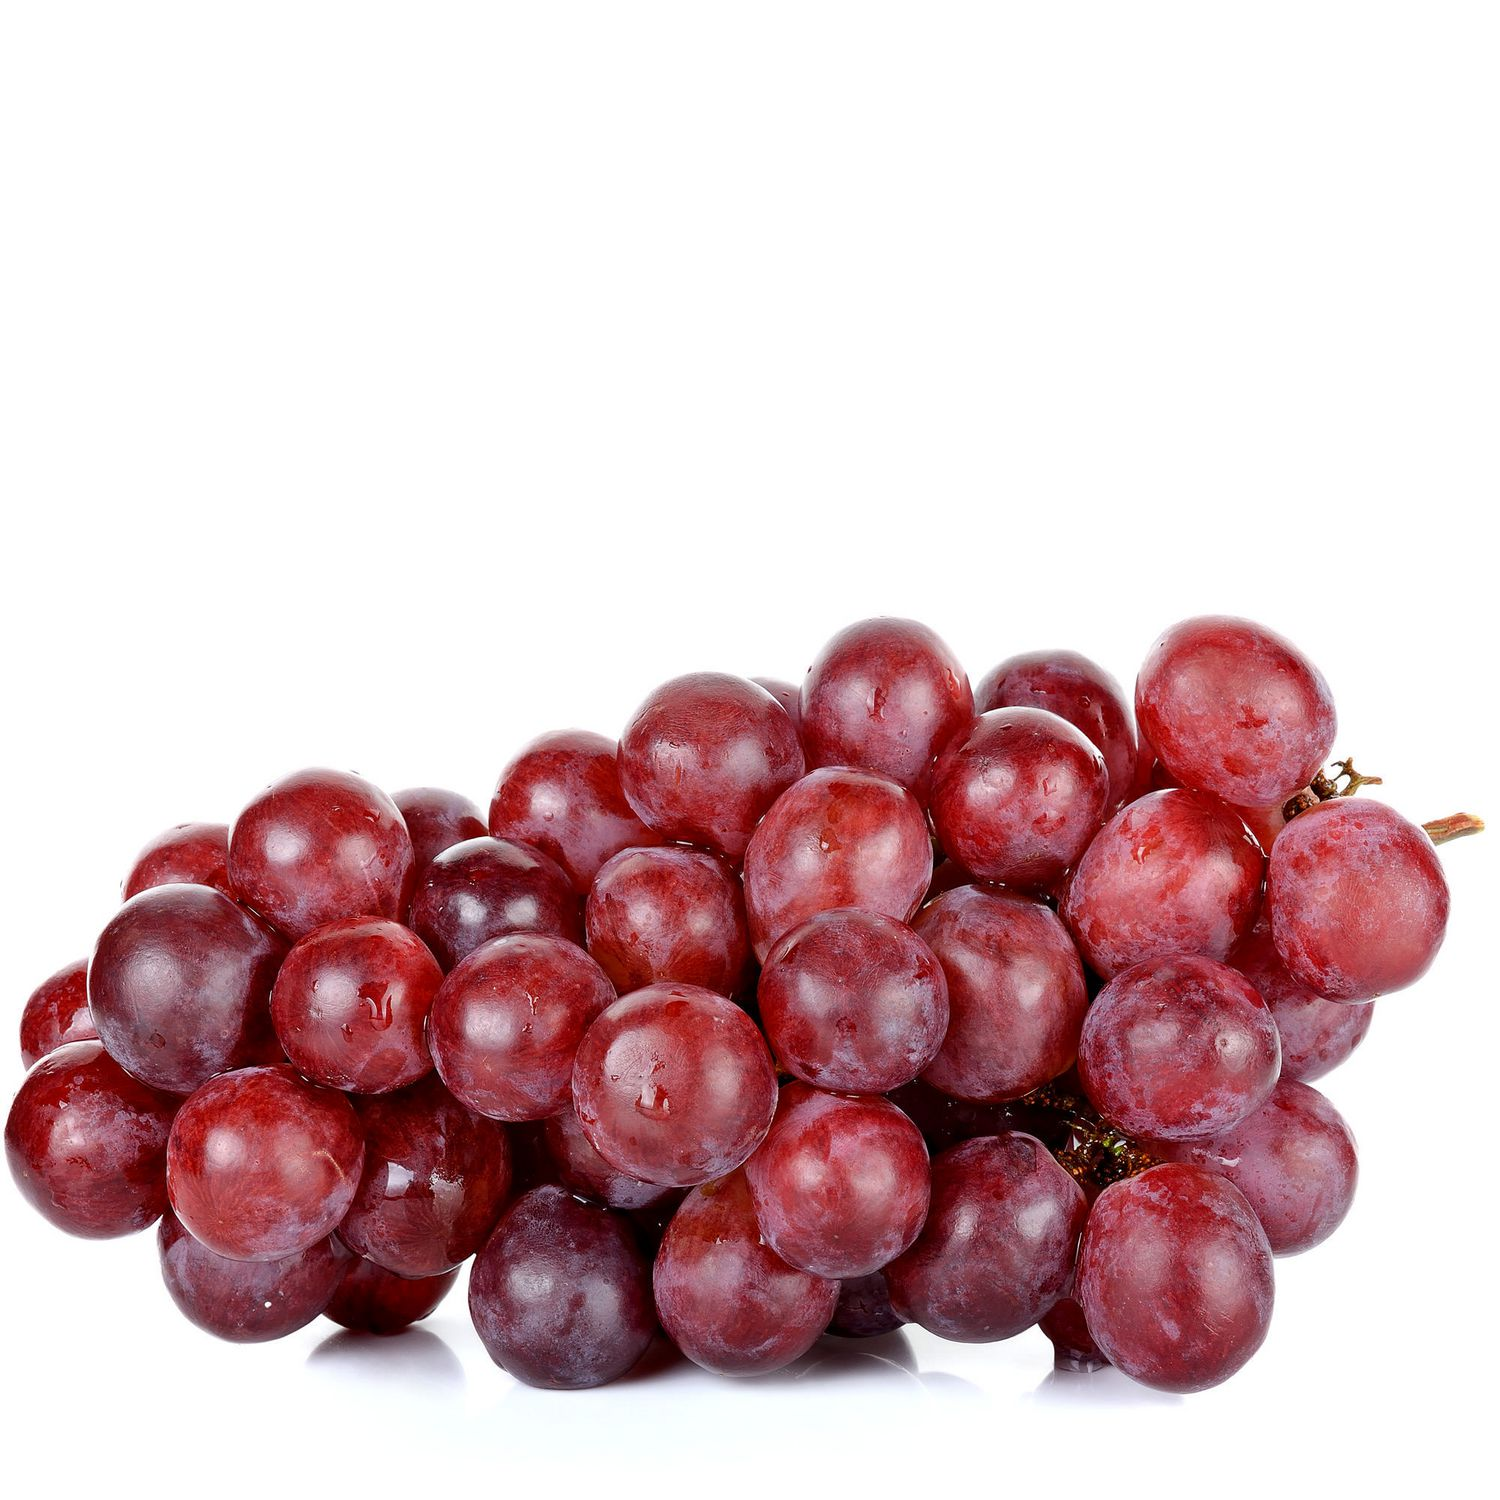 grapes red seedless walmart canada